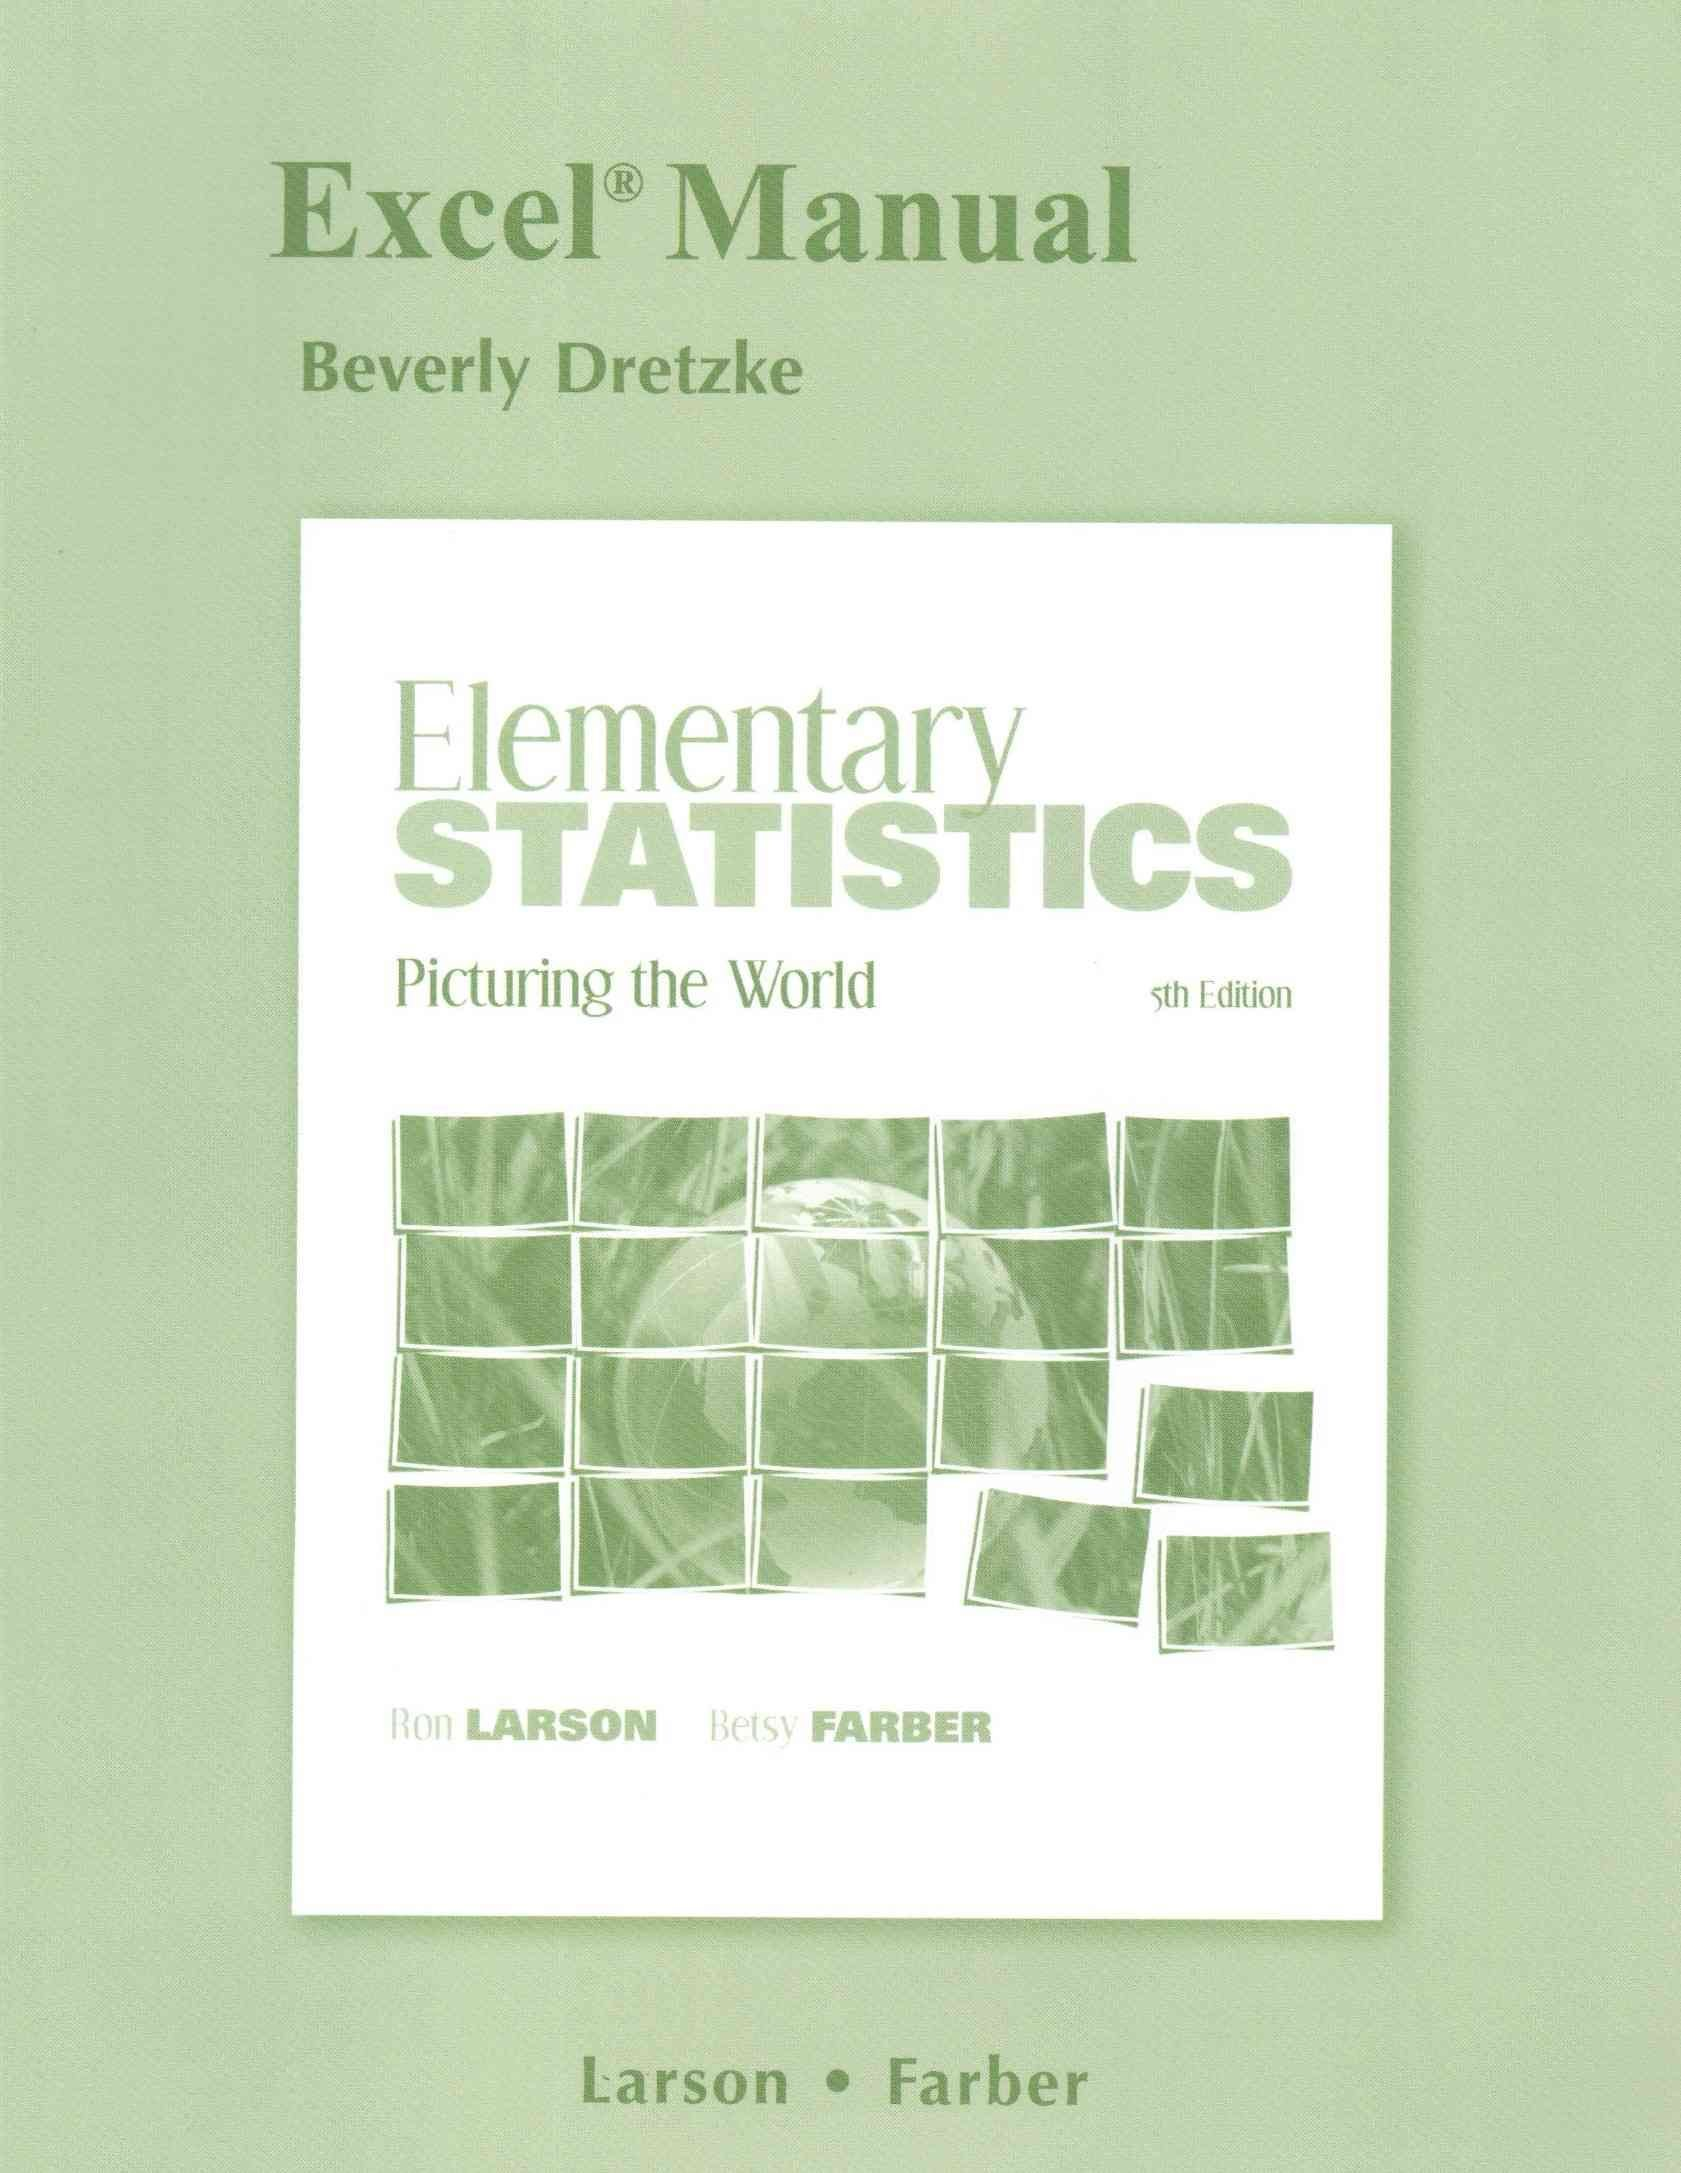 Excel Manual for Elementary Statistics - Ron Larson